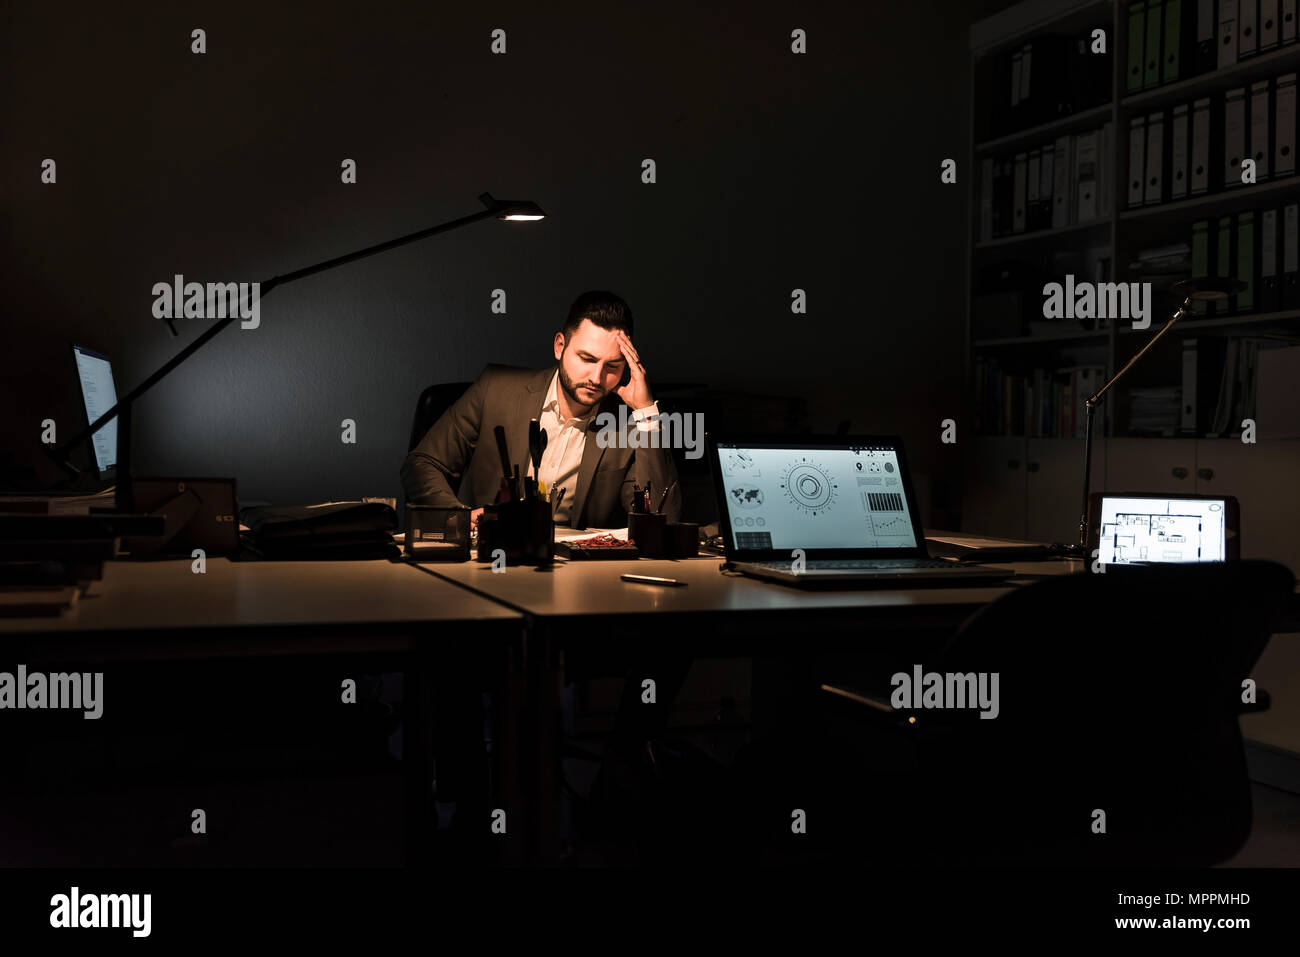 Businessman working in office at night - Stock Image